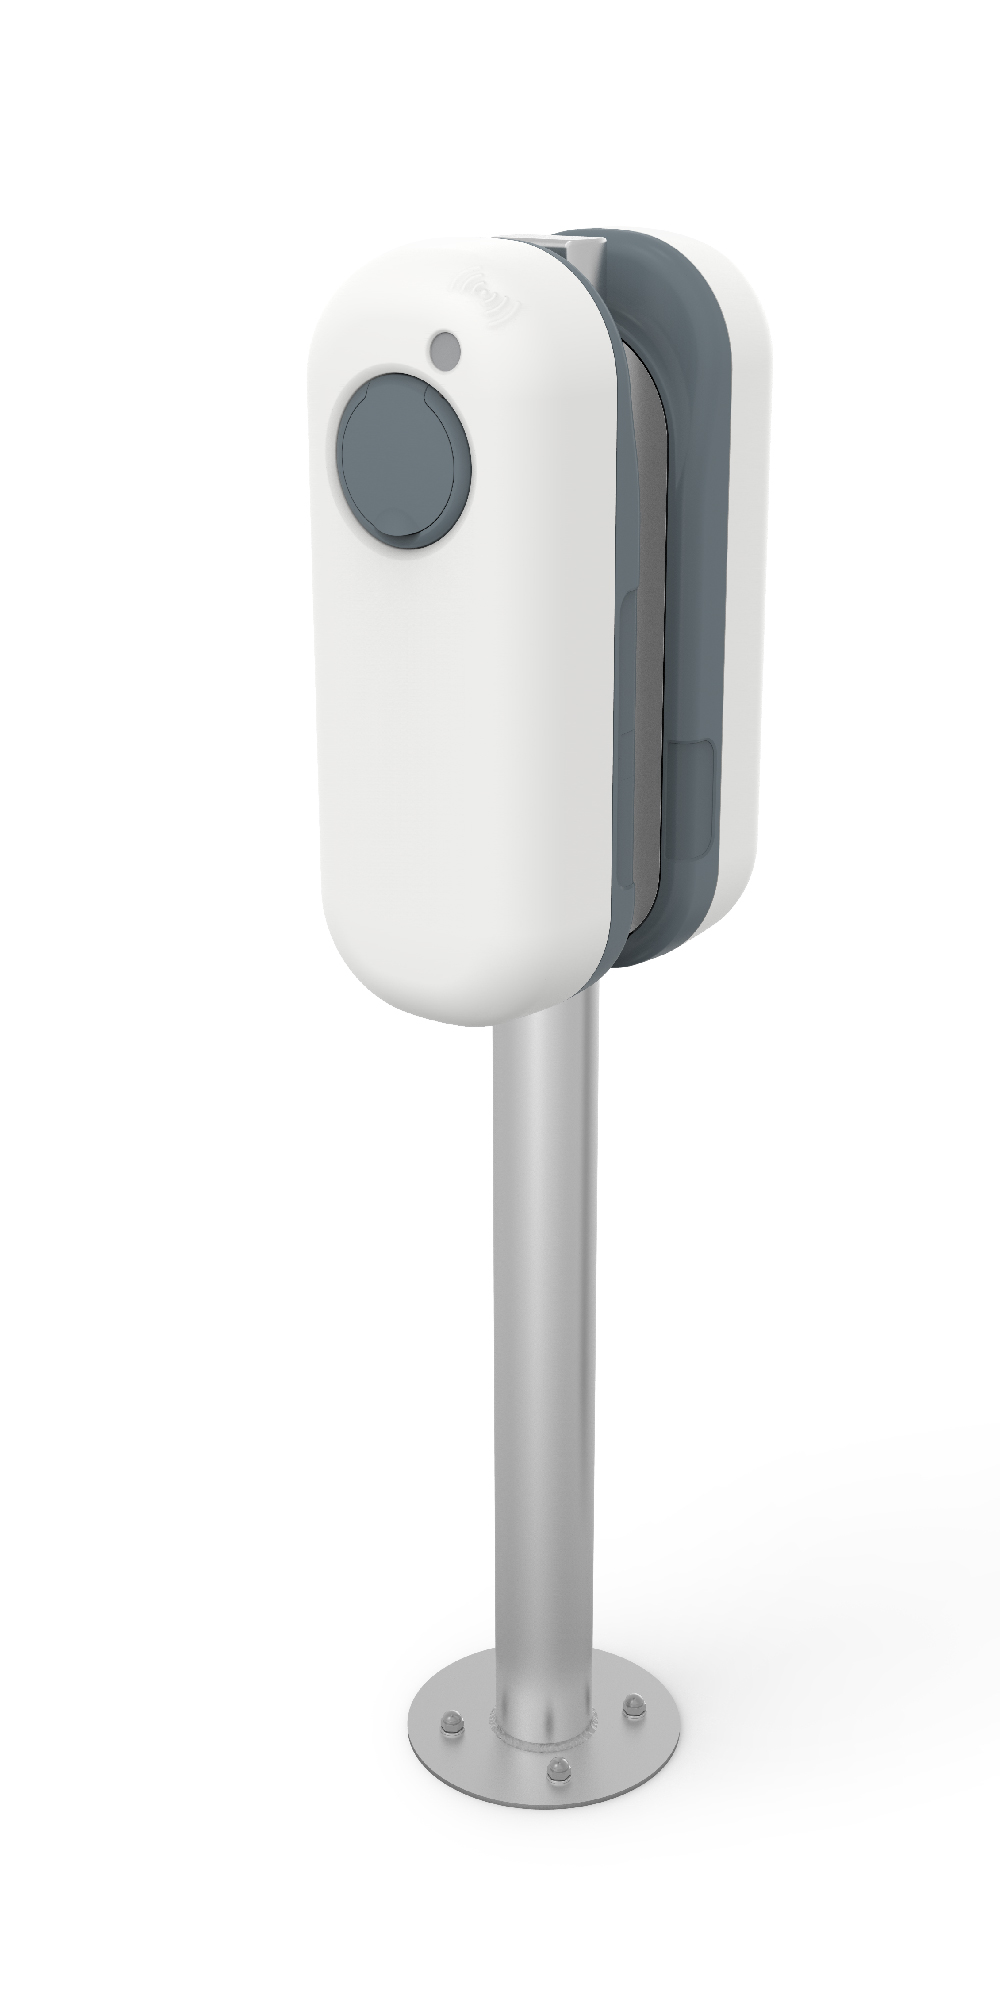 Ikea Service Client Telephone Charging Solutions For Ev Newmotion